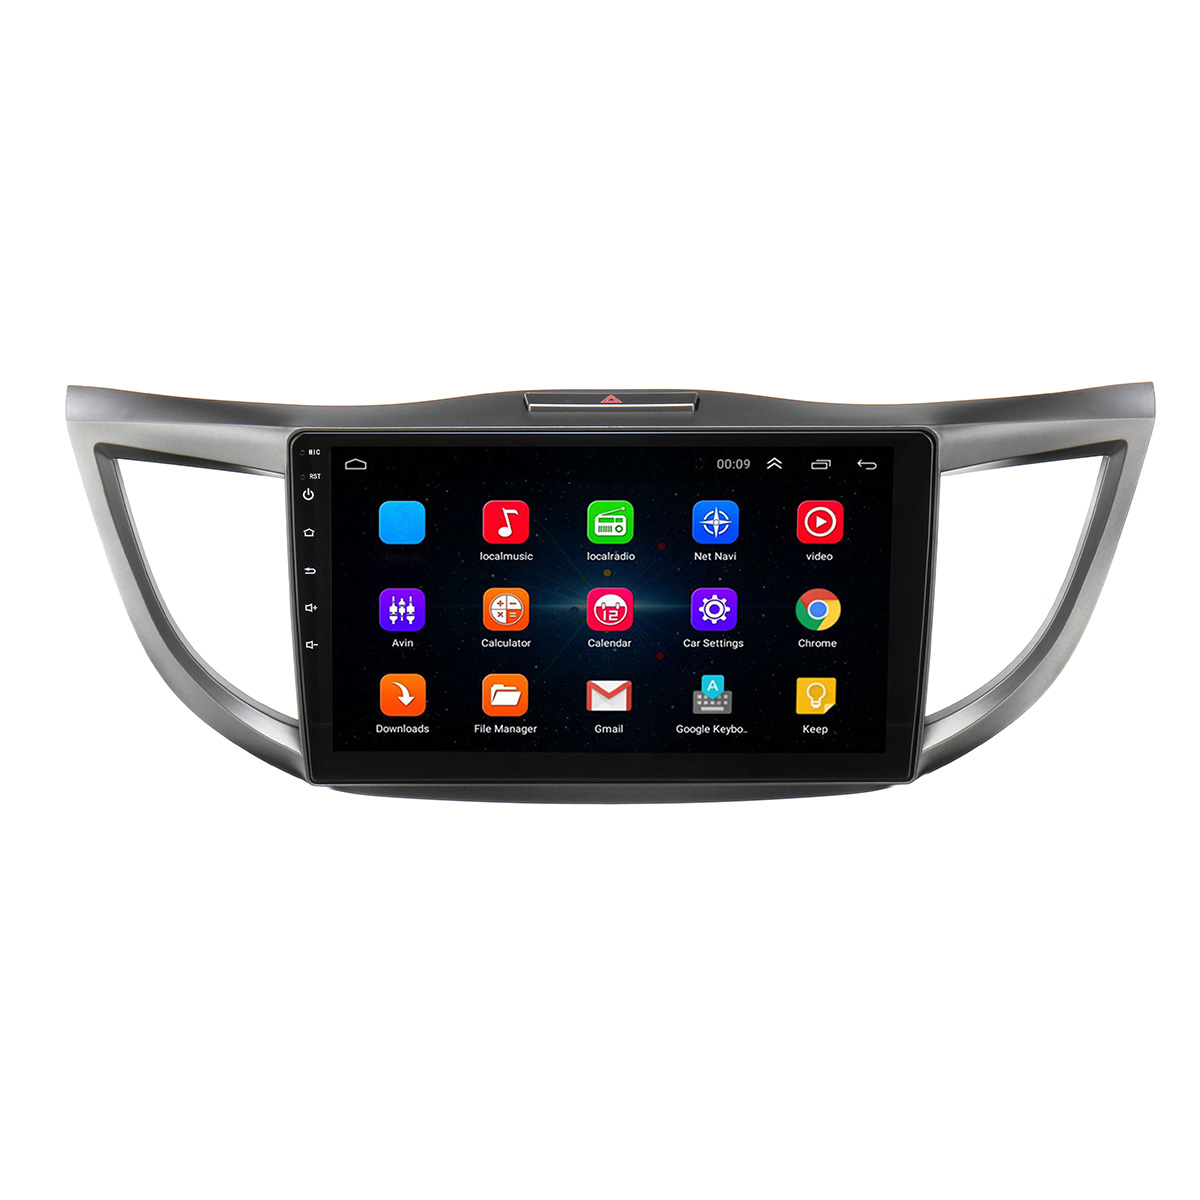 10.1 Inch 2 DIN For Android 8.1 Car Stereo Radio Quad Core 1+16